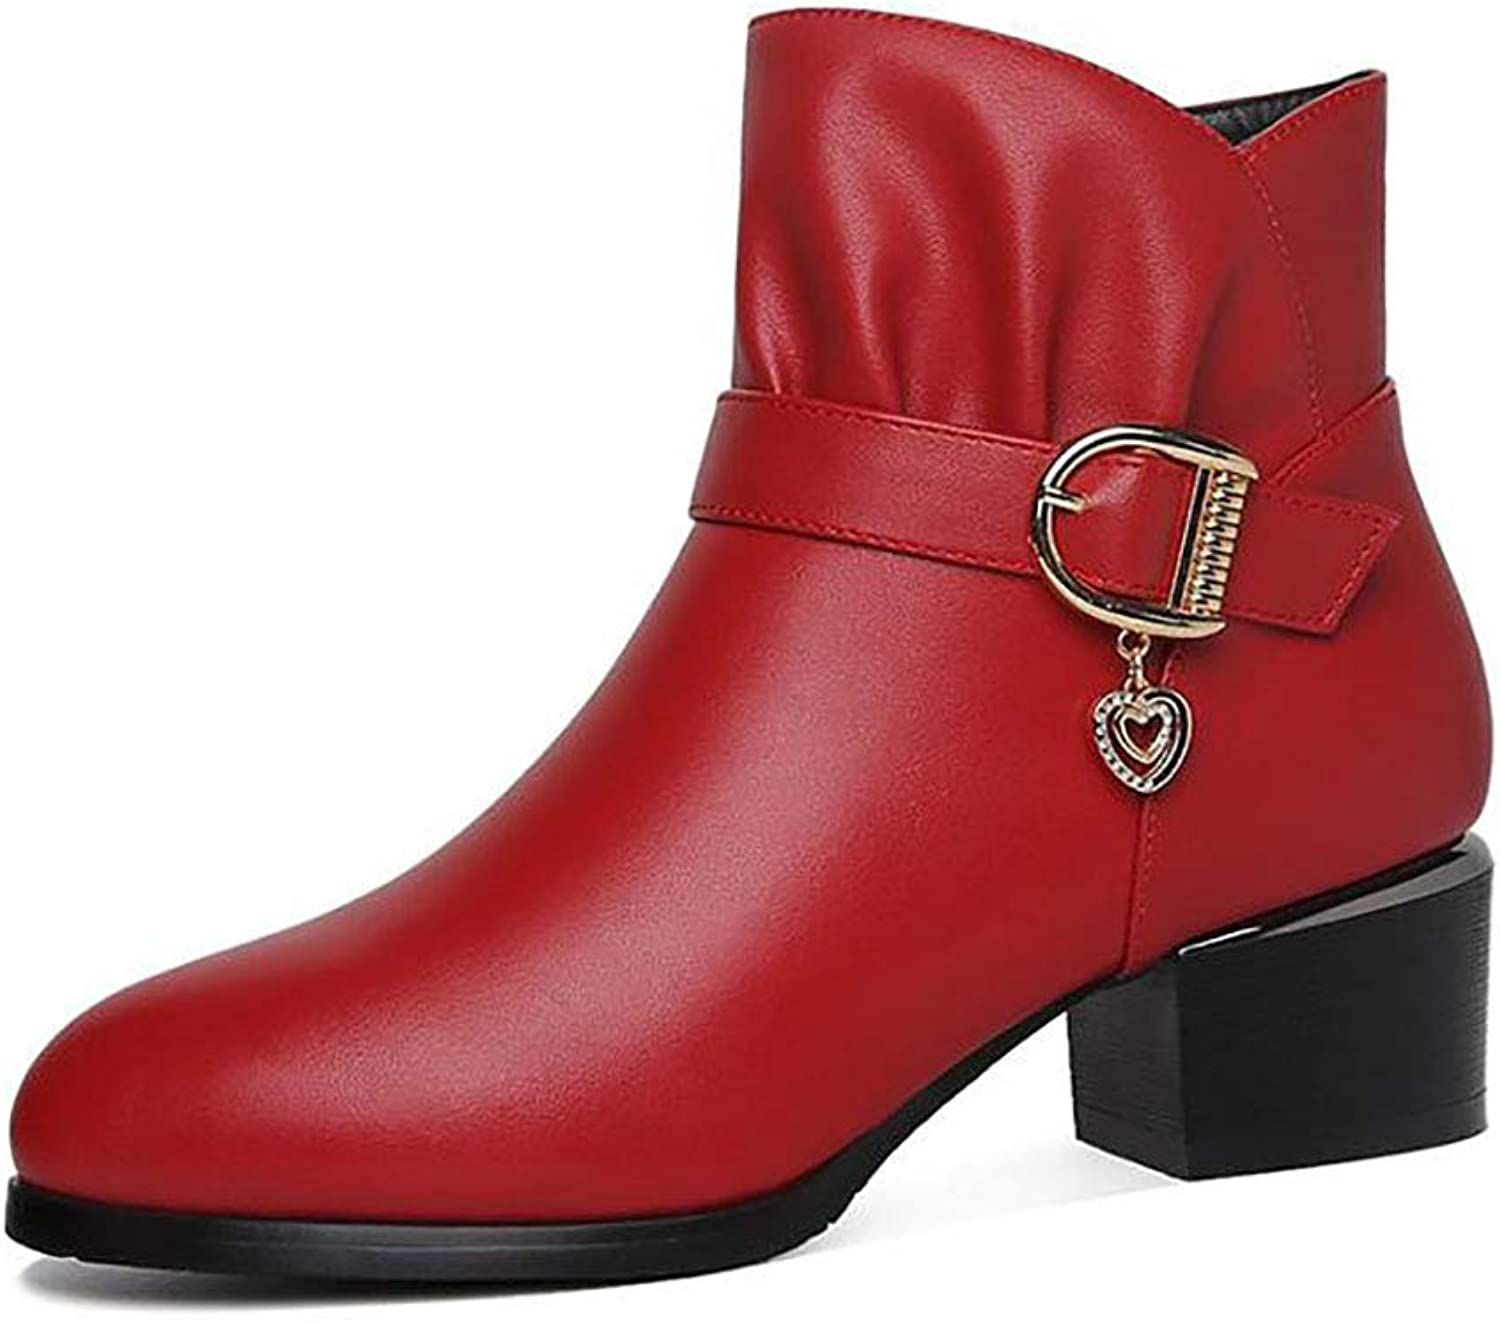 Women's shoes Chunky Heel Boots Autumn and Winter New Versatile Leather shoes (color   A, Size   34)